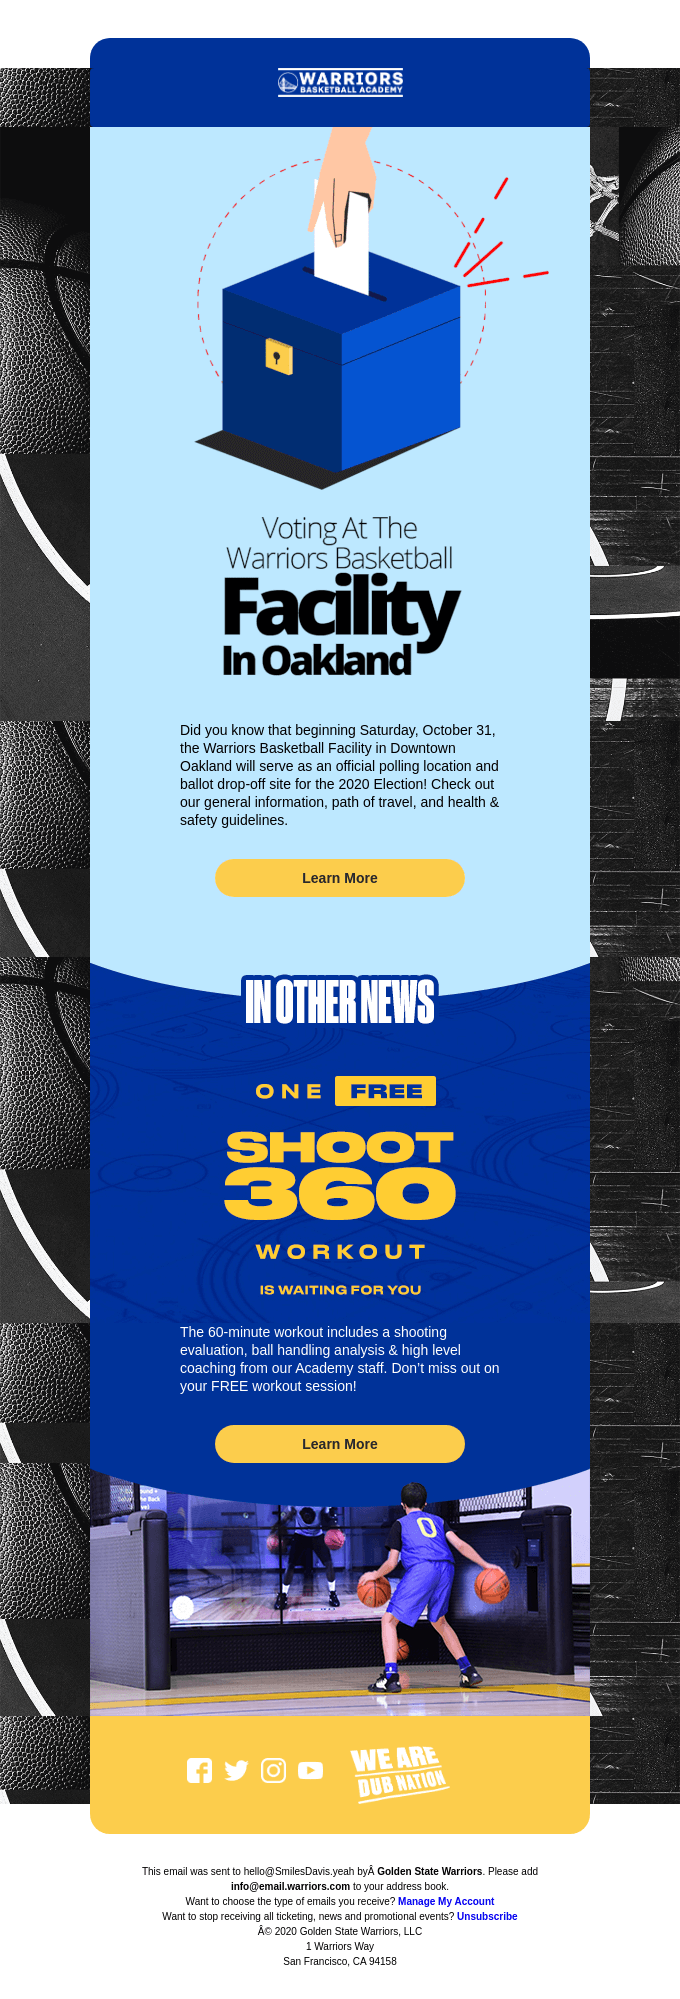 Voting In Oakland Just Got Easier